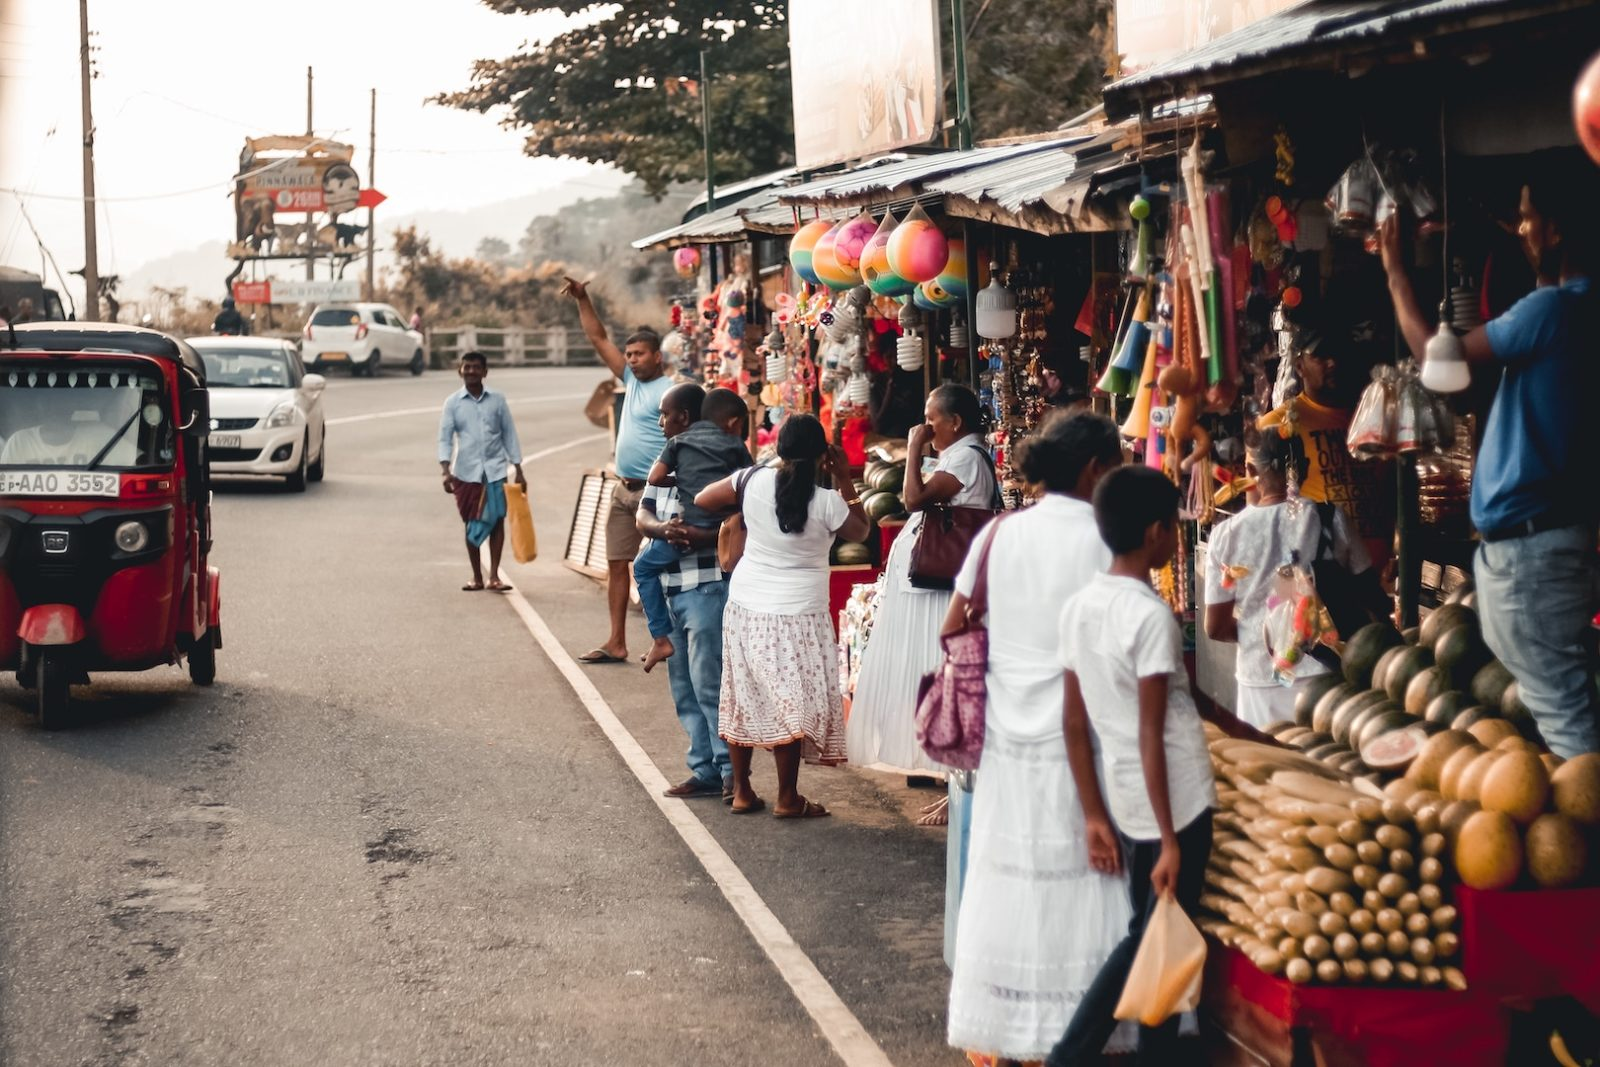 MUST VISITS WHEN ON LAYOVER IN SRI LANKA UNSPLASH